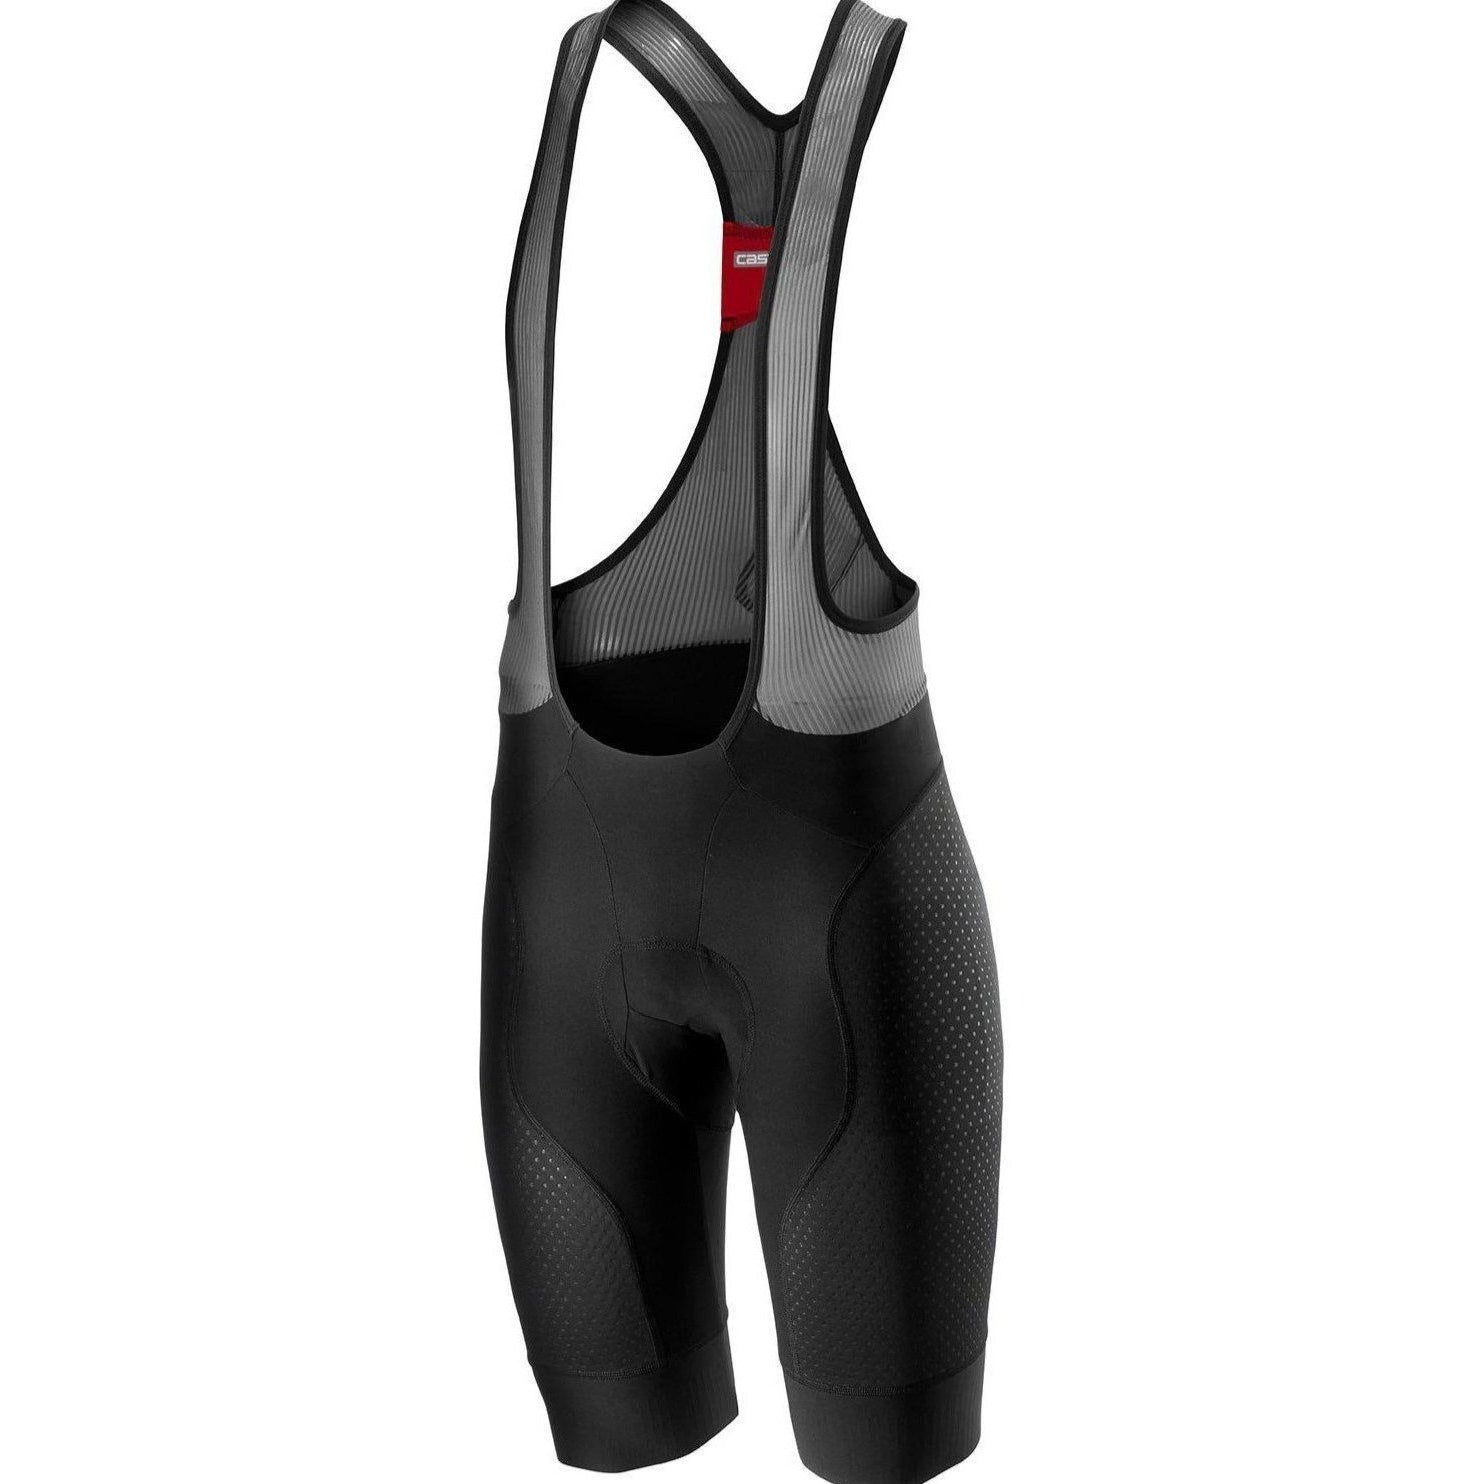 Buy the Castelli Free Aero Race 4 Bib Shorts at Saddleback for £150.00 with free next day* UK mainland delivery